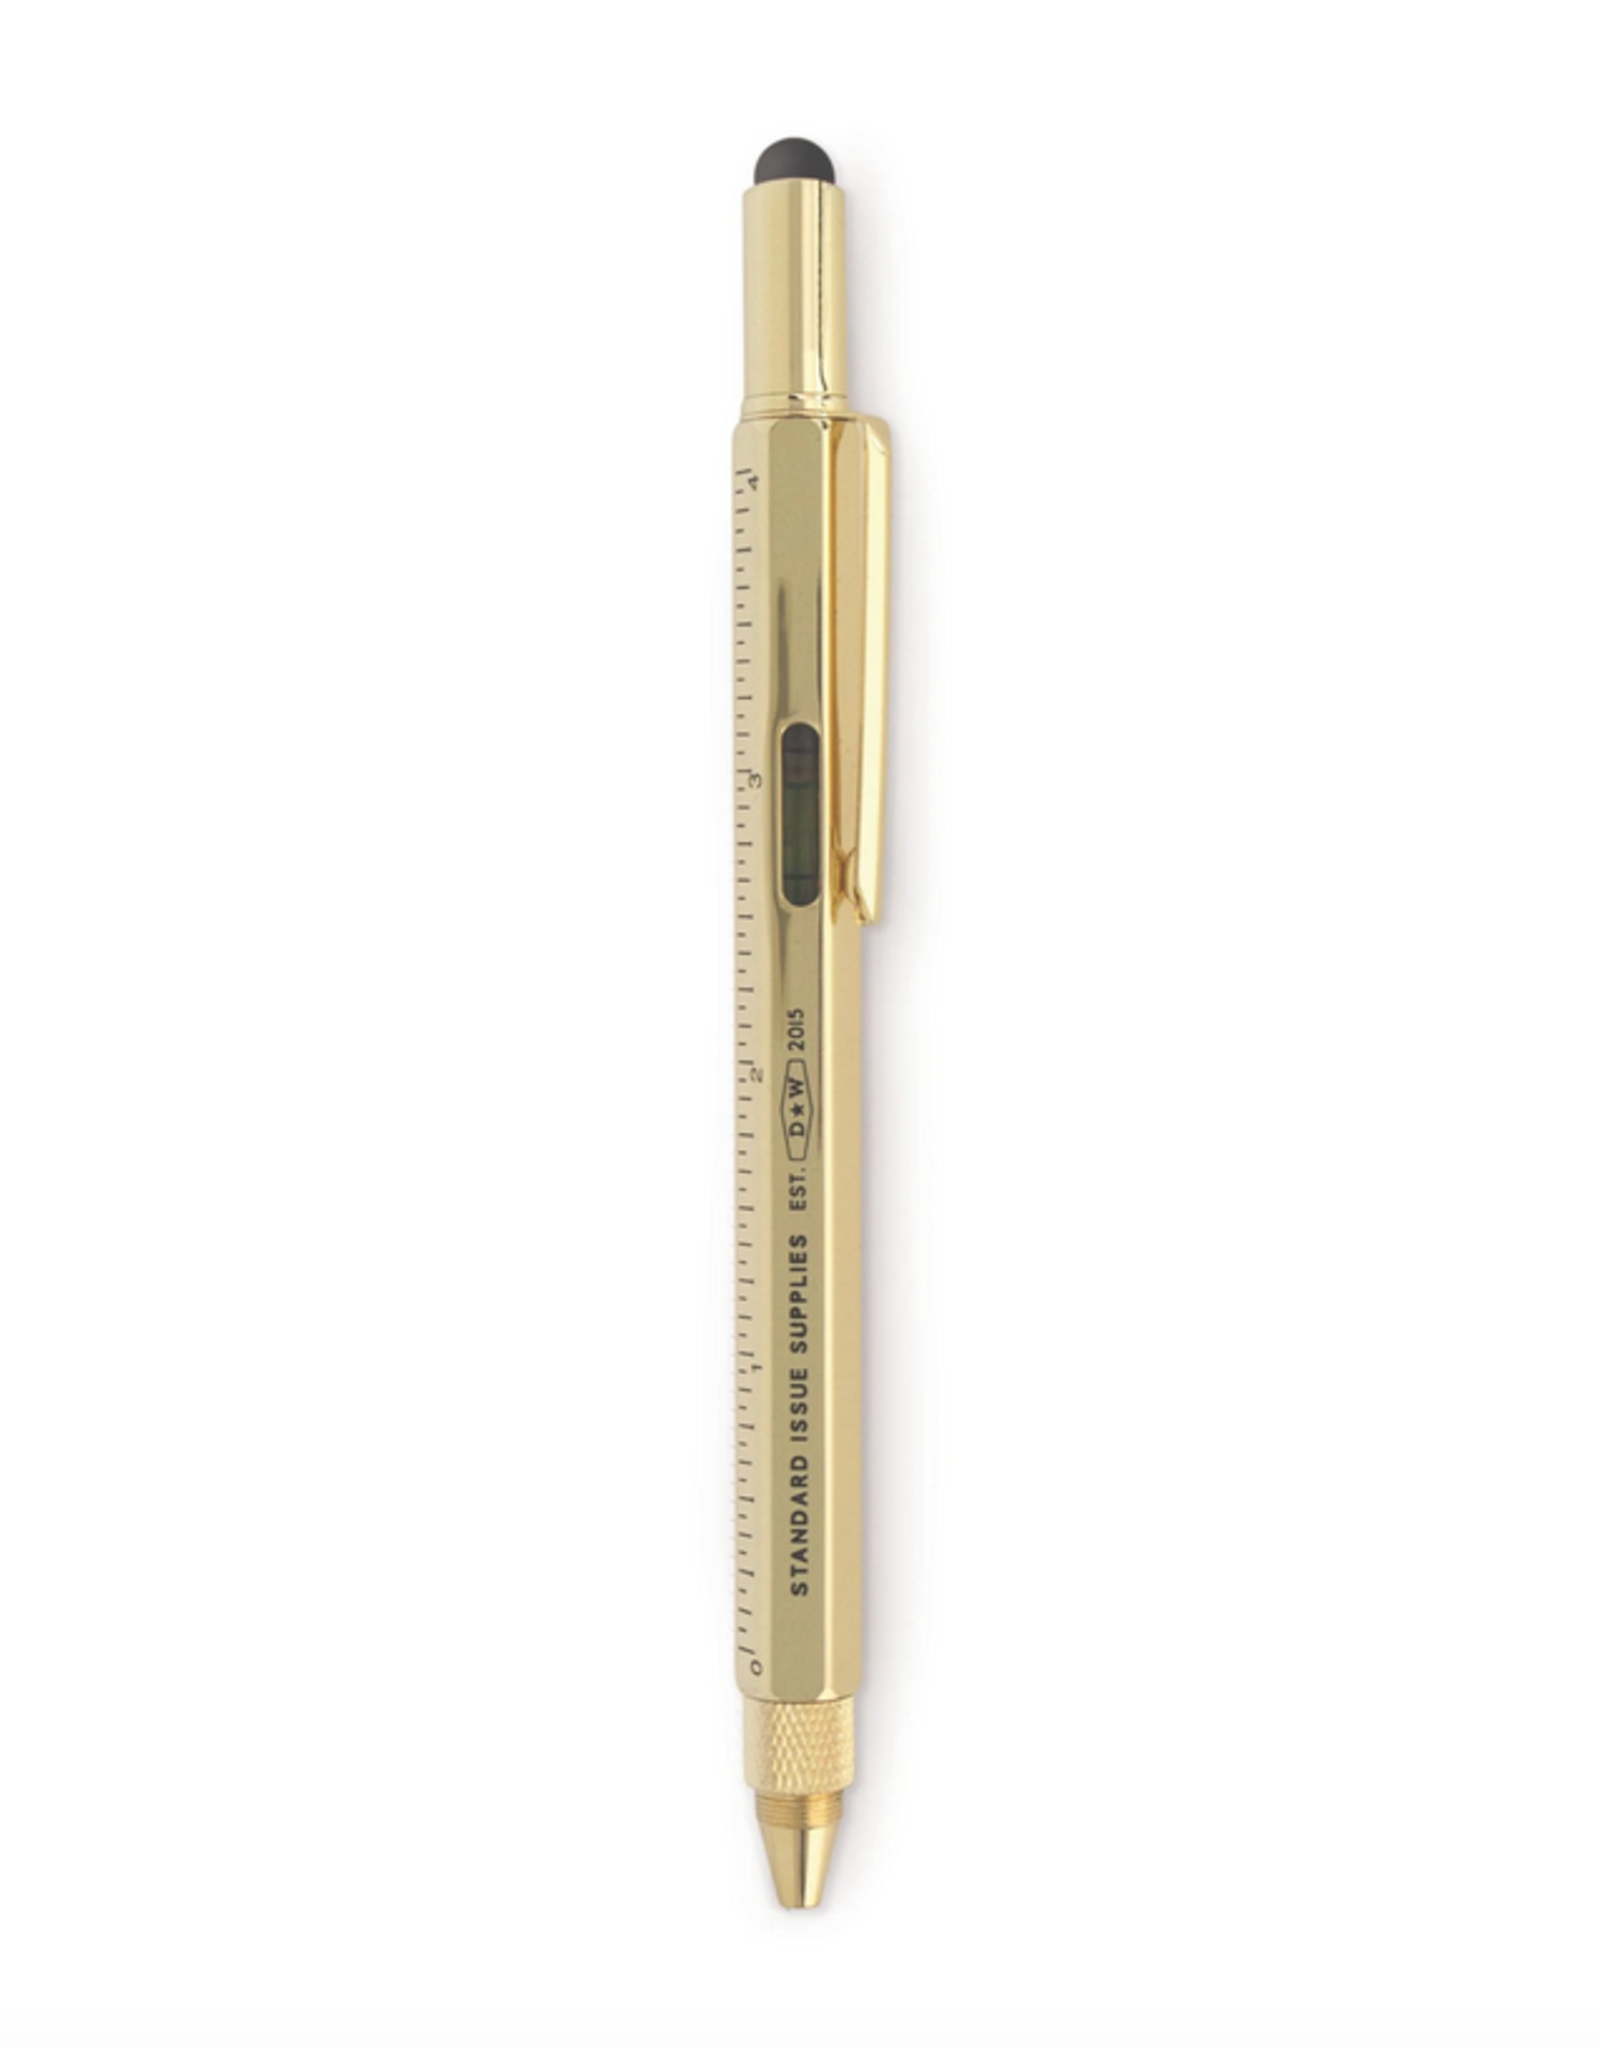 Multi-Tool Pen - Gold